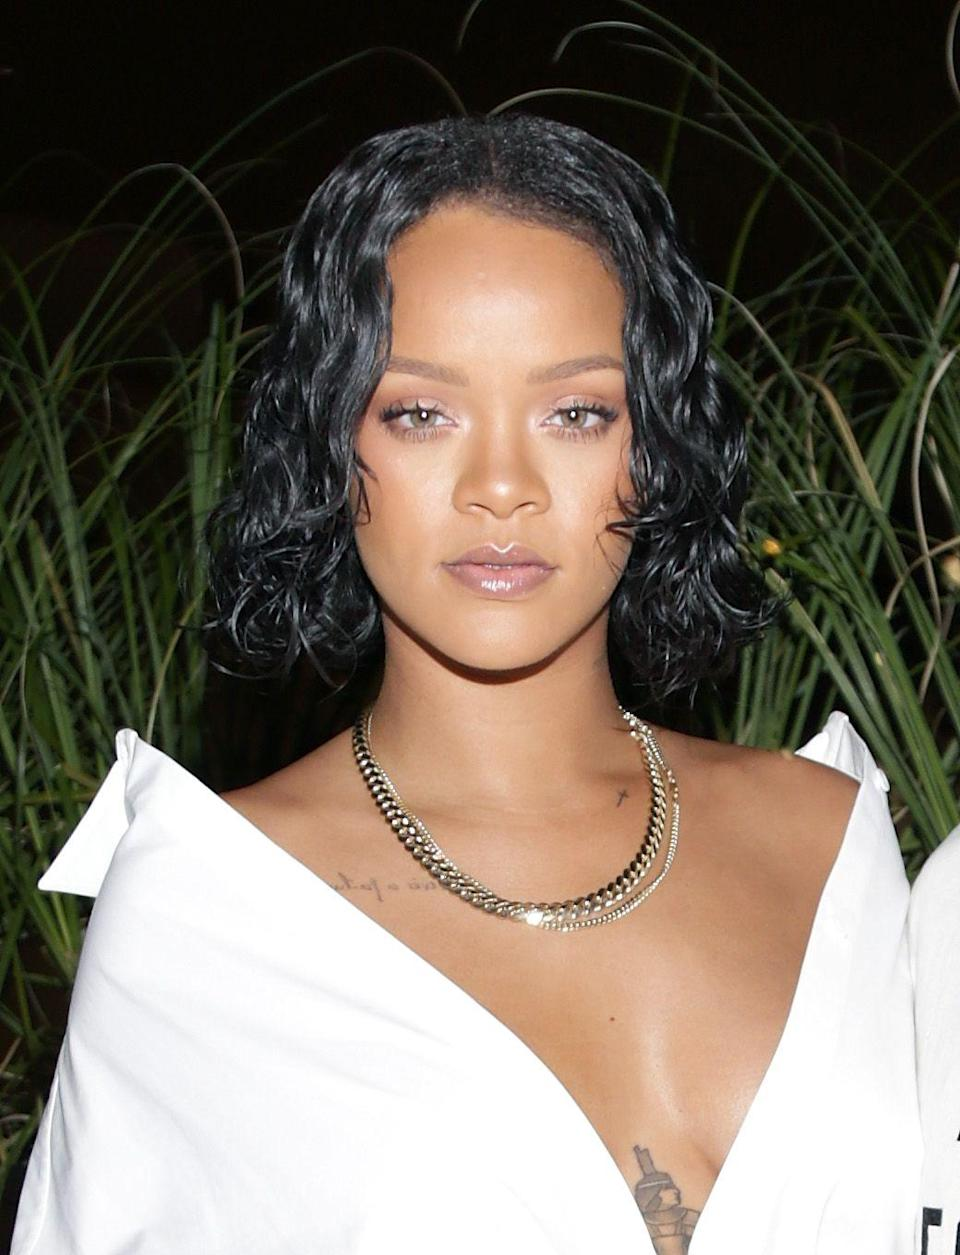 """<p><strong>Real name: </strong>Robyn Rihanna Fenty</p><p>She still goes by Robyn with friends and family. """"When I hear 'Robyn,' I pay attention,"""" she told <a href=""""http://www.rollingstone.com/music/pictures/excerpts-from-rihannas-rolling-stone-cover-story-20110330/rihanna-is-actually-her-middle-name-0551241"""" rel=""""nofollow noopener"""" target=""""_blank"""" data-ylk=""""slk:Rolling Stone"""" class=""""link rapid-noclick-resp"""">Rolling Stone</a>.</p>"""